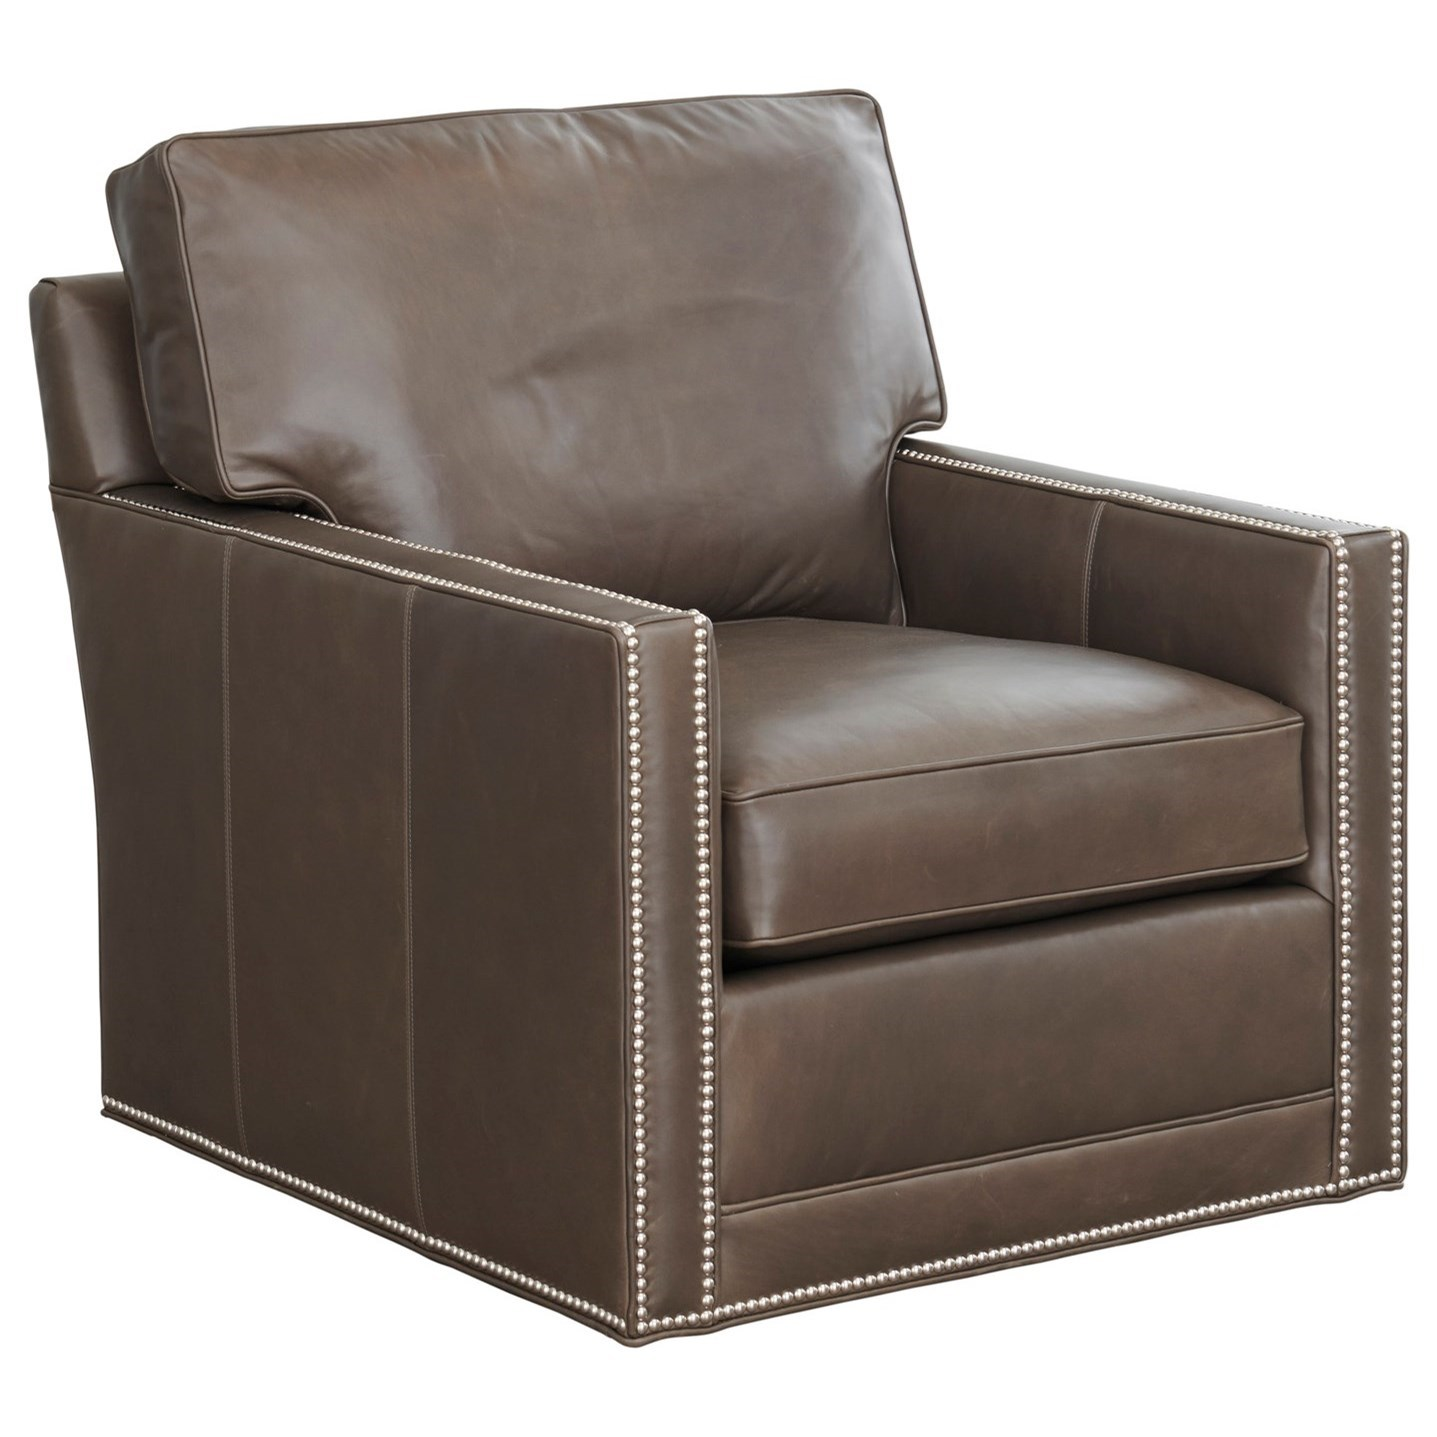 Couture Leather Brayden Customizable Swivel Chair by Lexington at Baer's Furniture